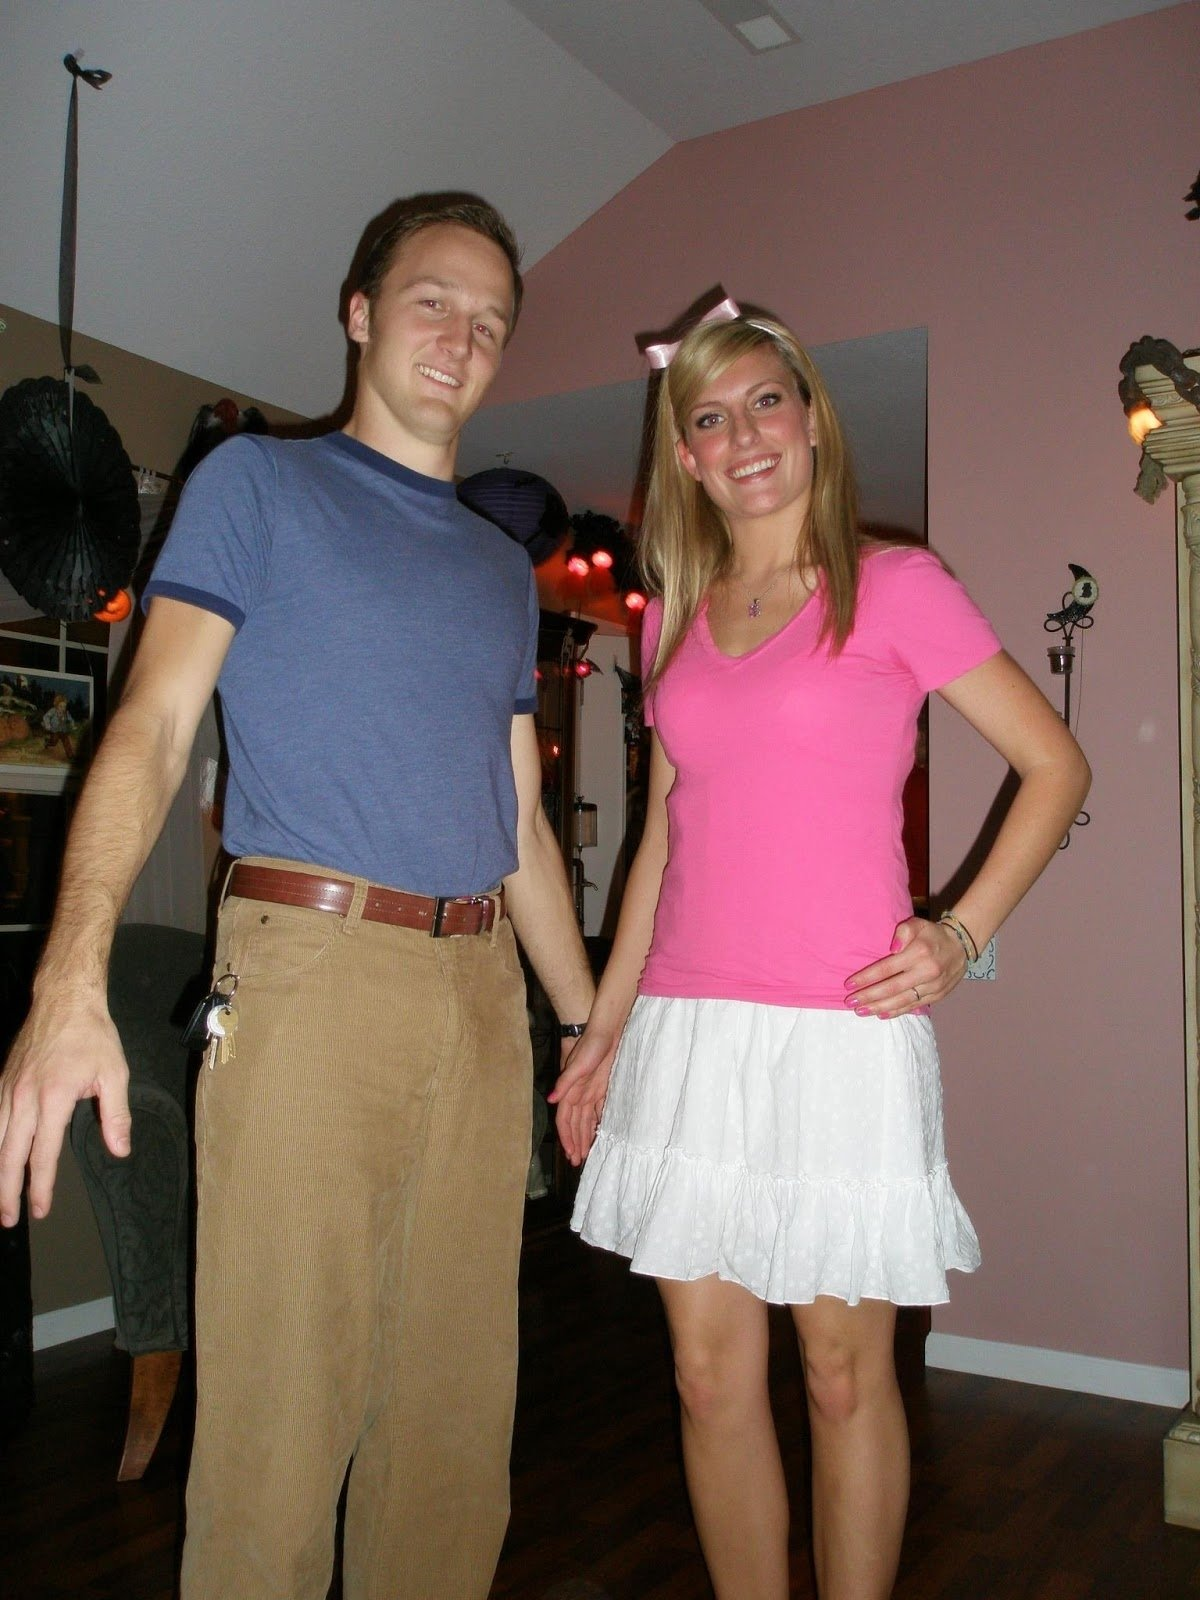 10 Best Unique Couple Halloween Costume Ideas 57 couples diy costumes 12 diy halloween costumes for couples 4